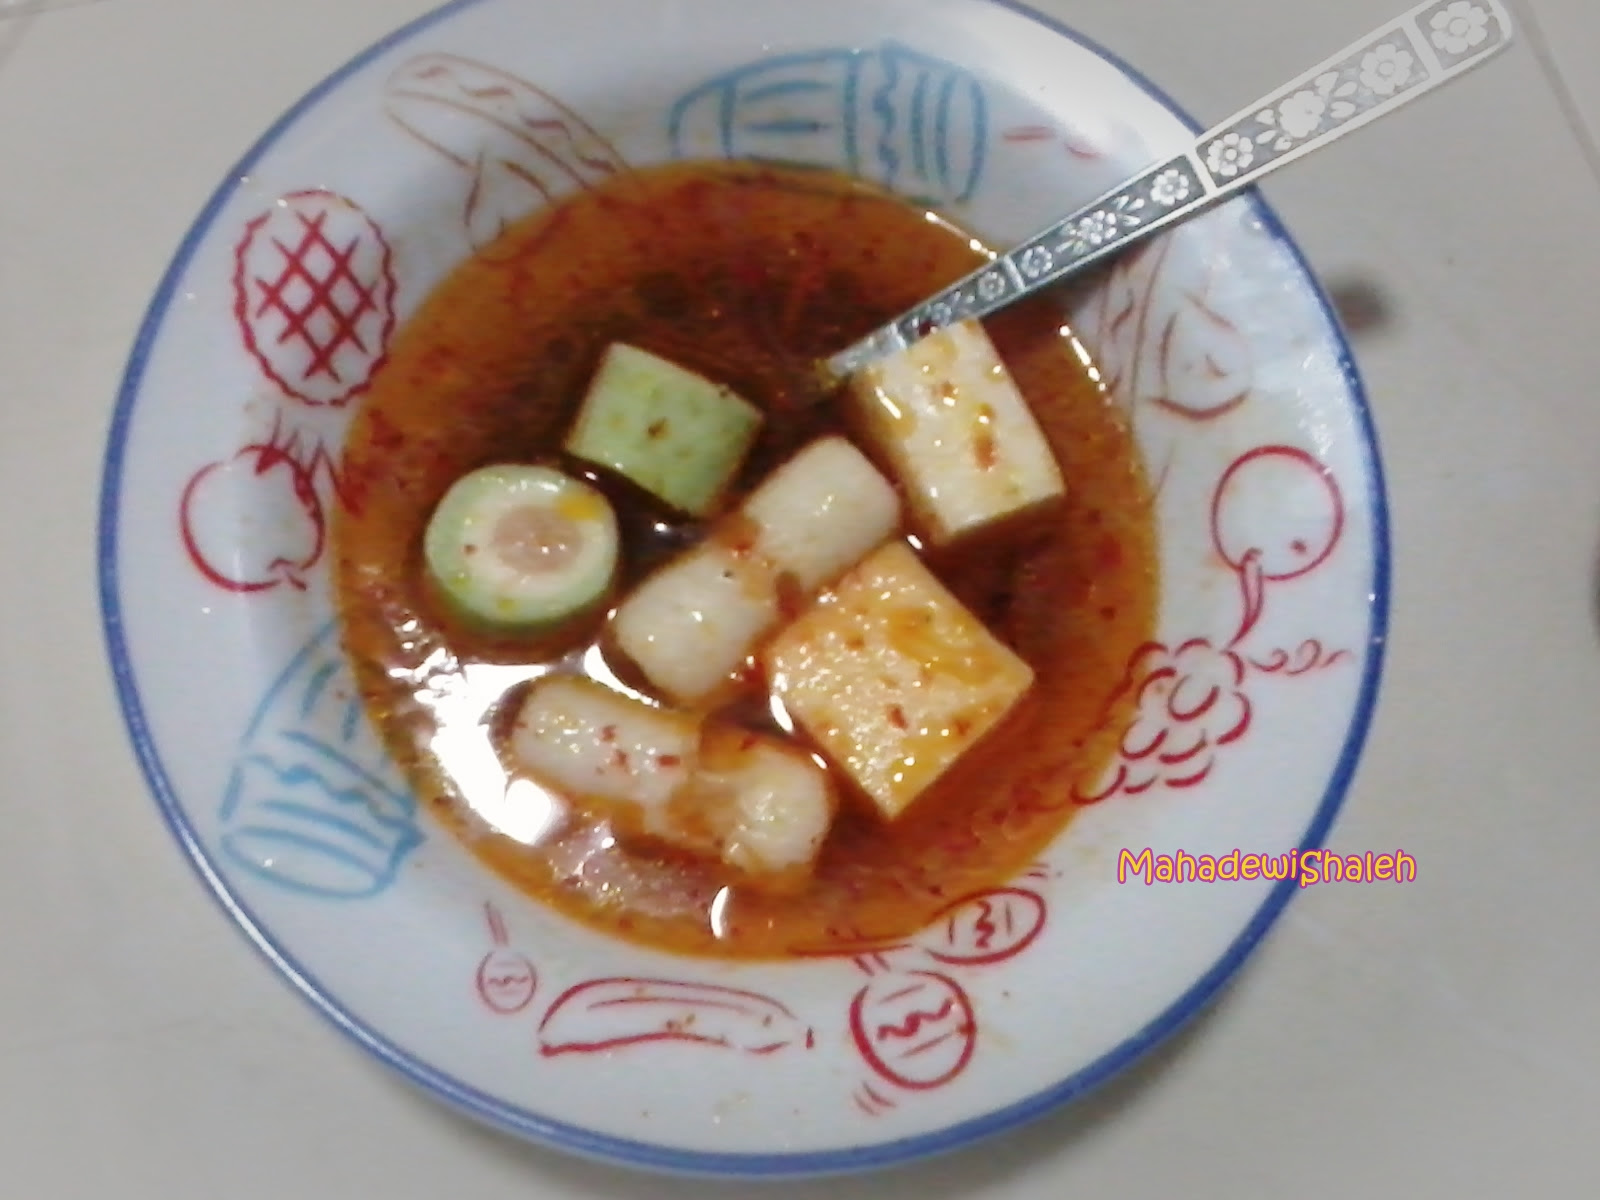 Let's Eat Handmade Tom Yum! Yammeh!